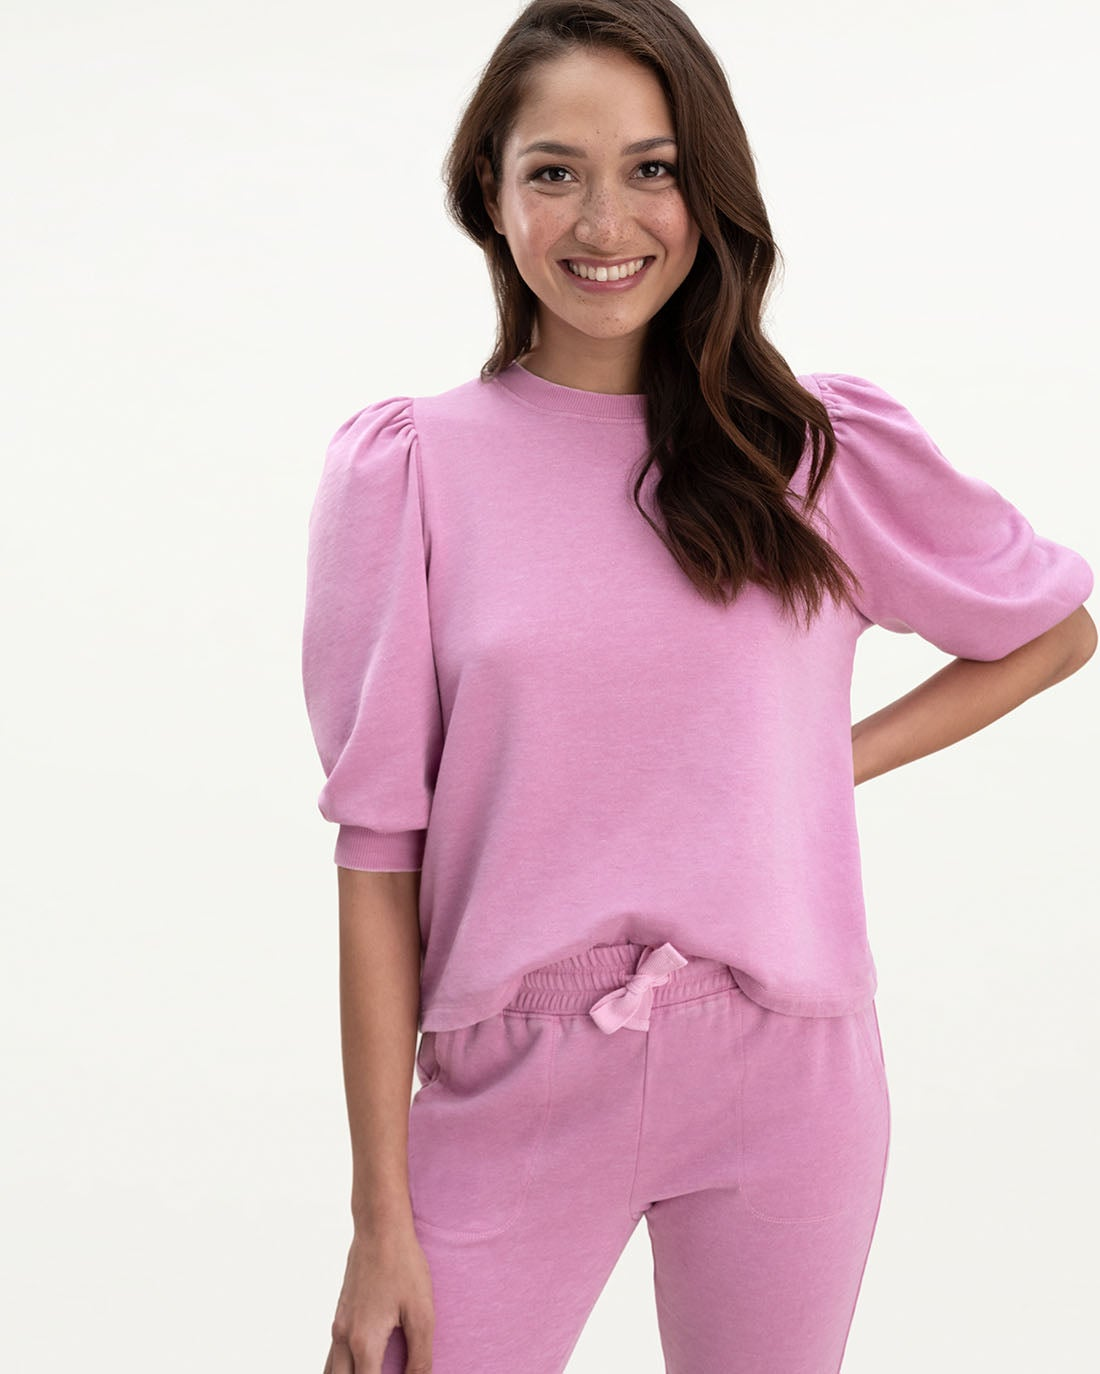 Mariposa Flounce Pullover in Peony